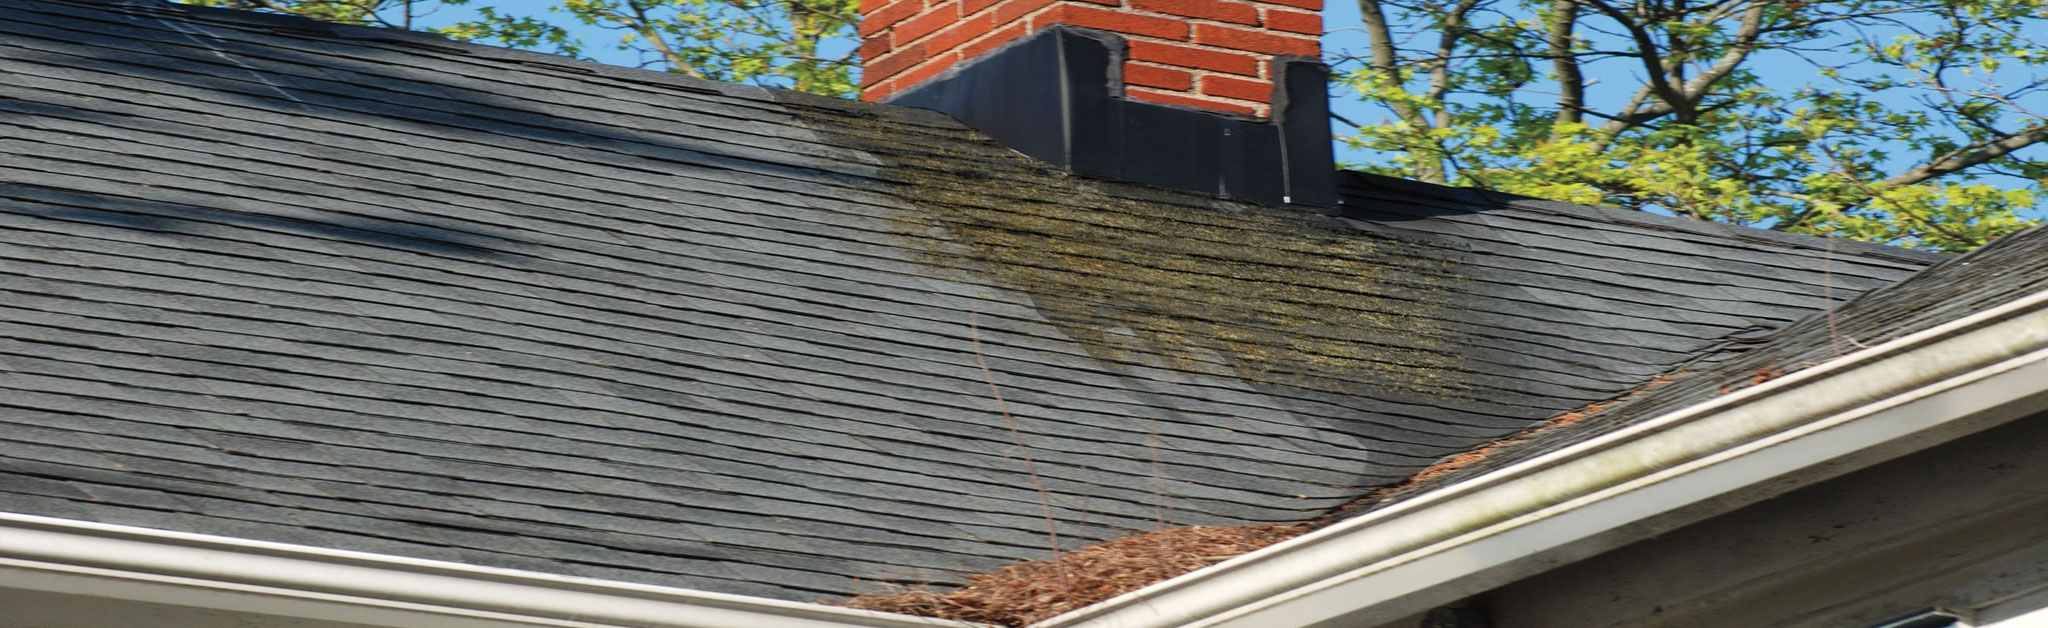 Ruck Roofing Images